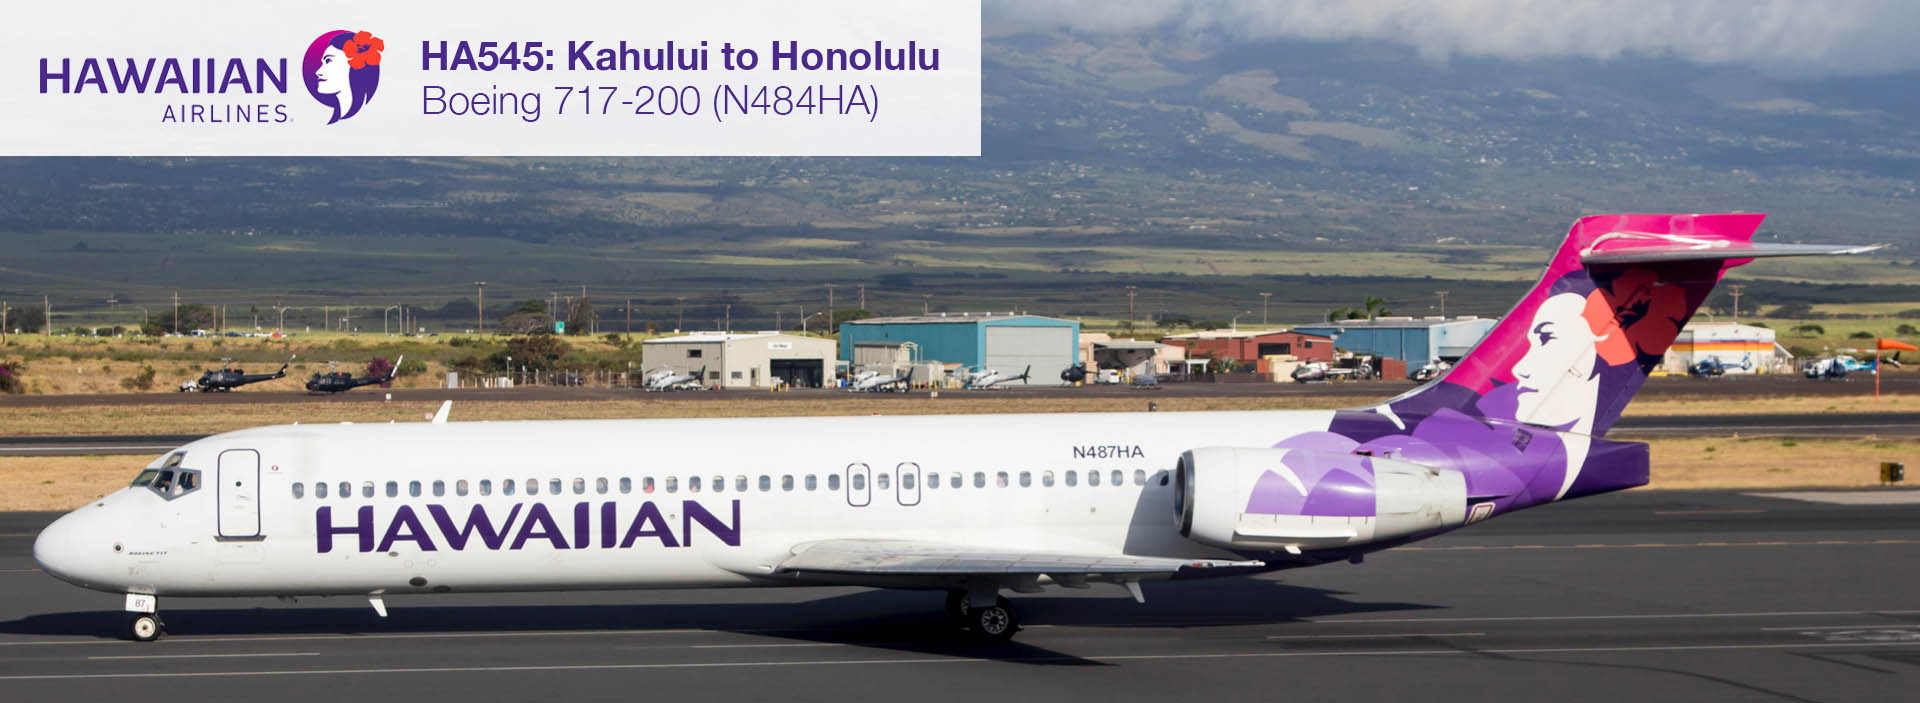 Fine Hawaiian Airlines 717 Economy Class Kahului To Honolulu Unemploymentrelief Wooden Chair Designs For Living Room Unemploymentrelieforg